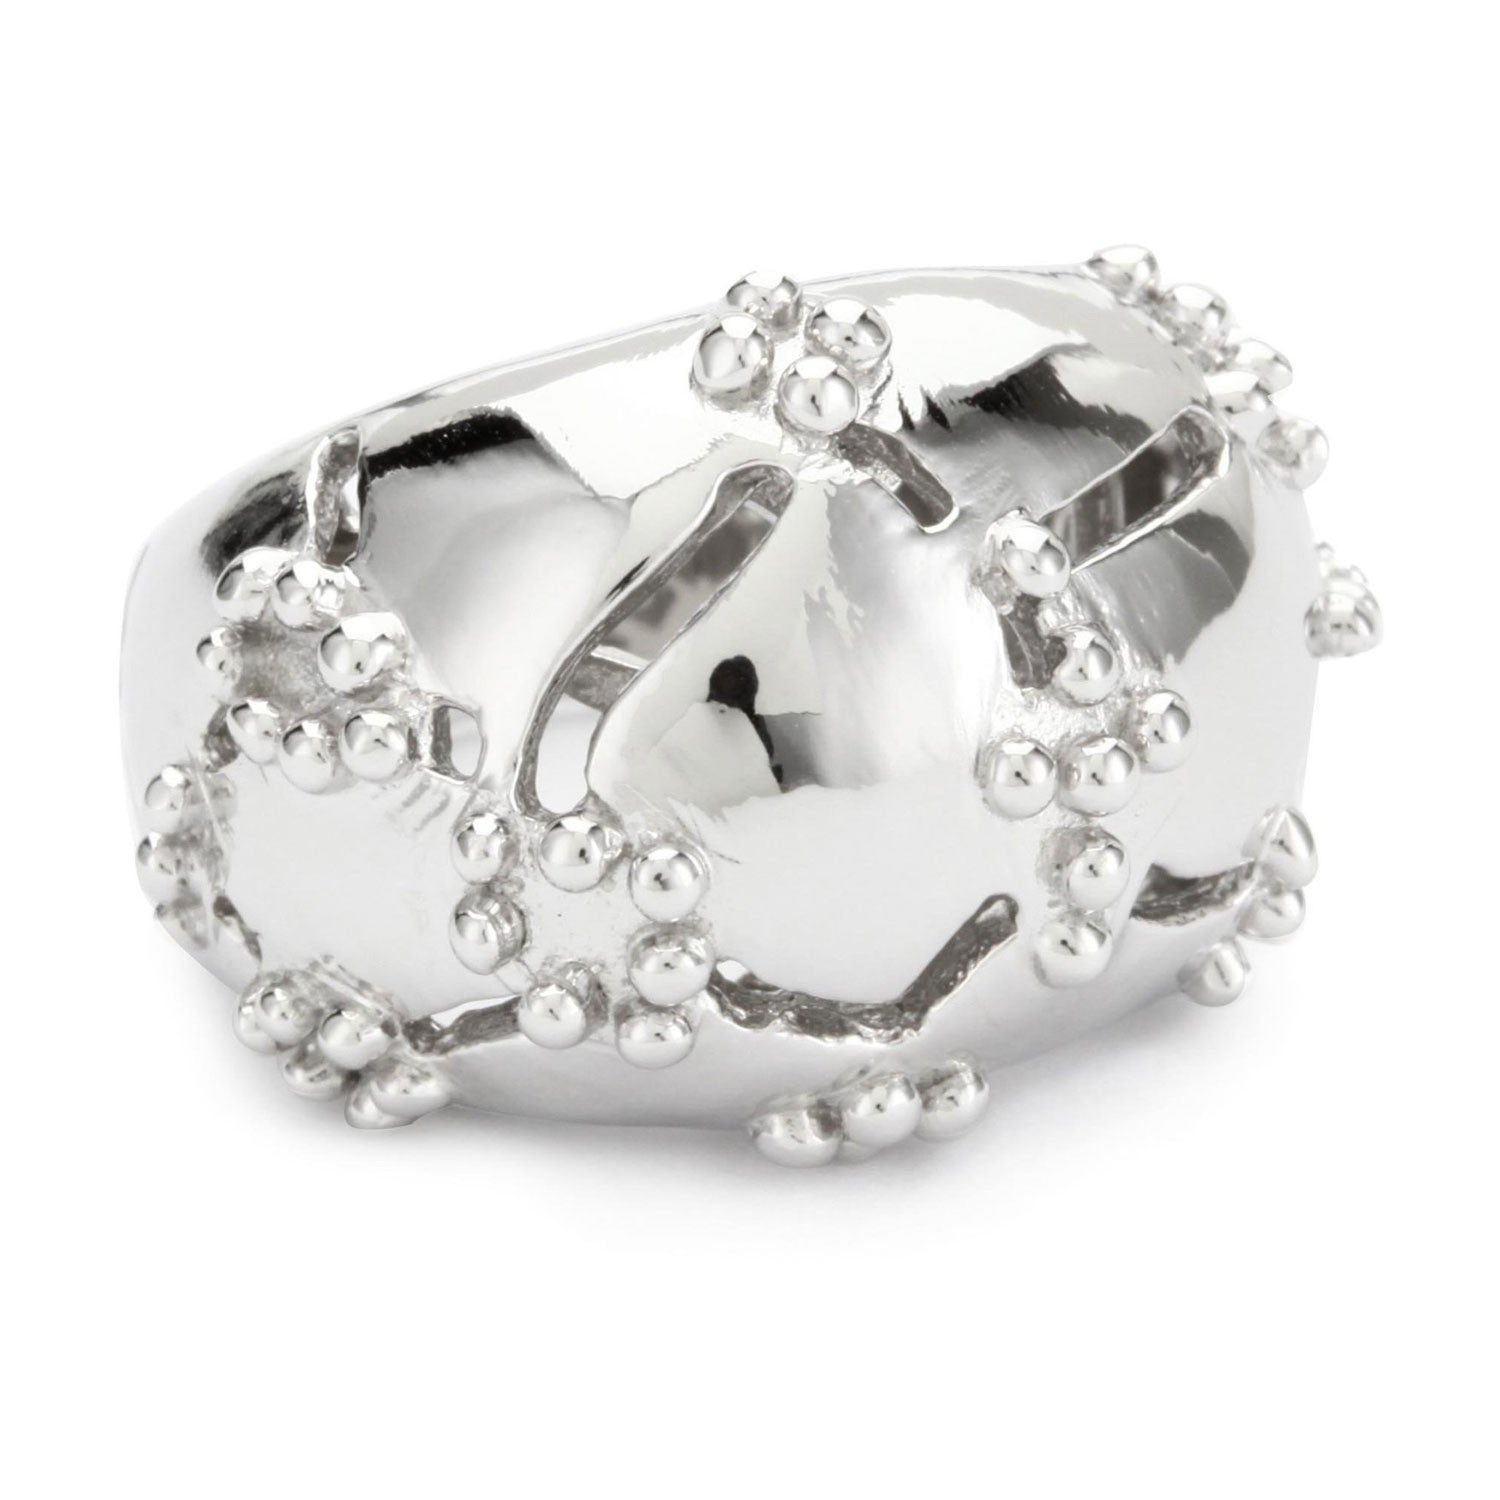 Rhodium Plated Sterling Silver, Croco Dome Ring